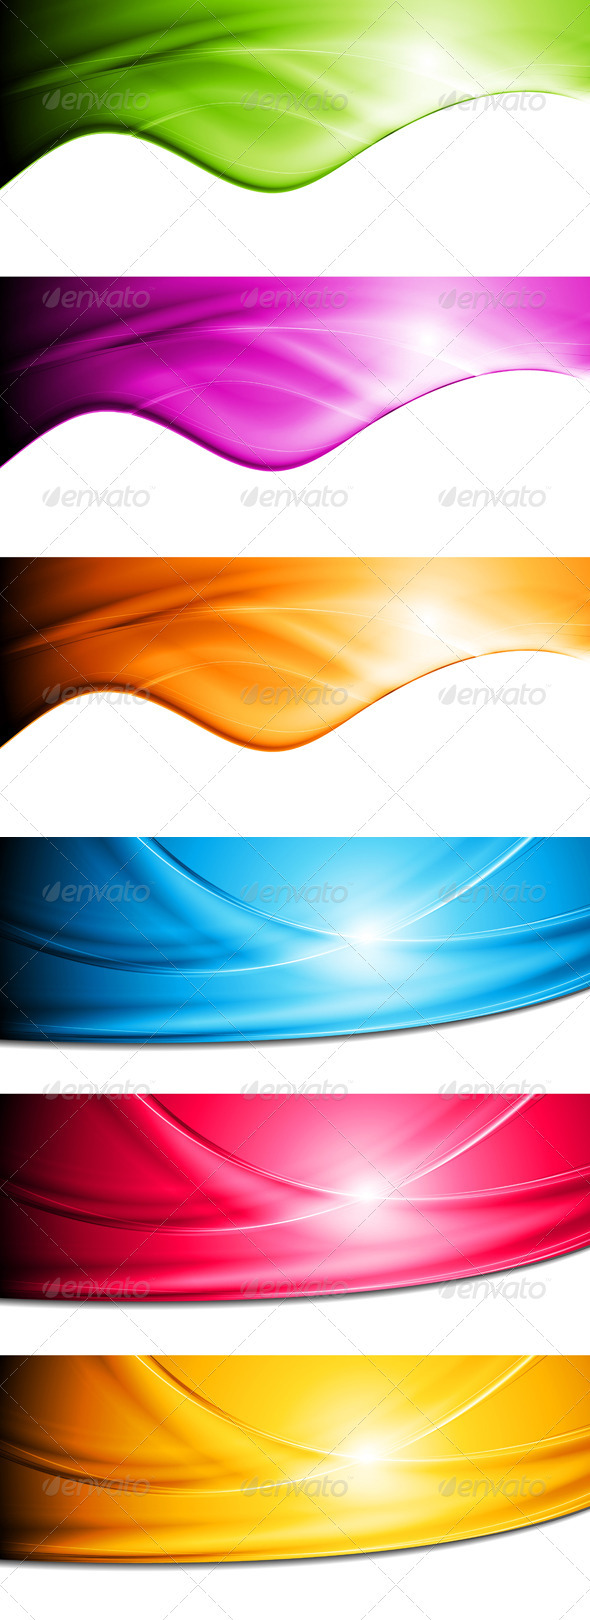 GraphicRiver Bright vector waves banners 3744807